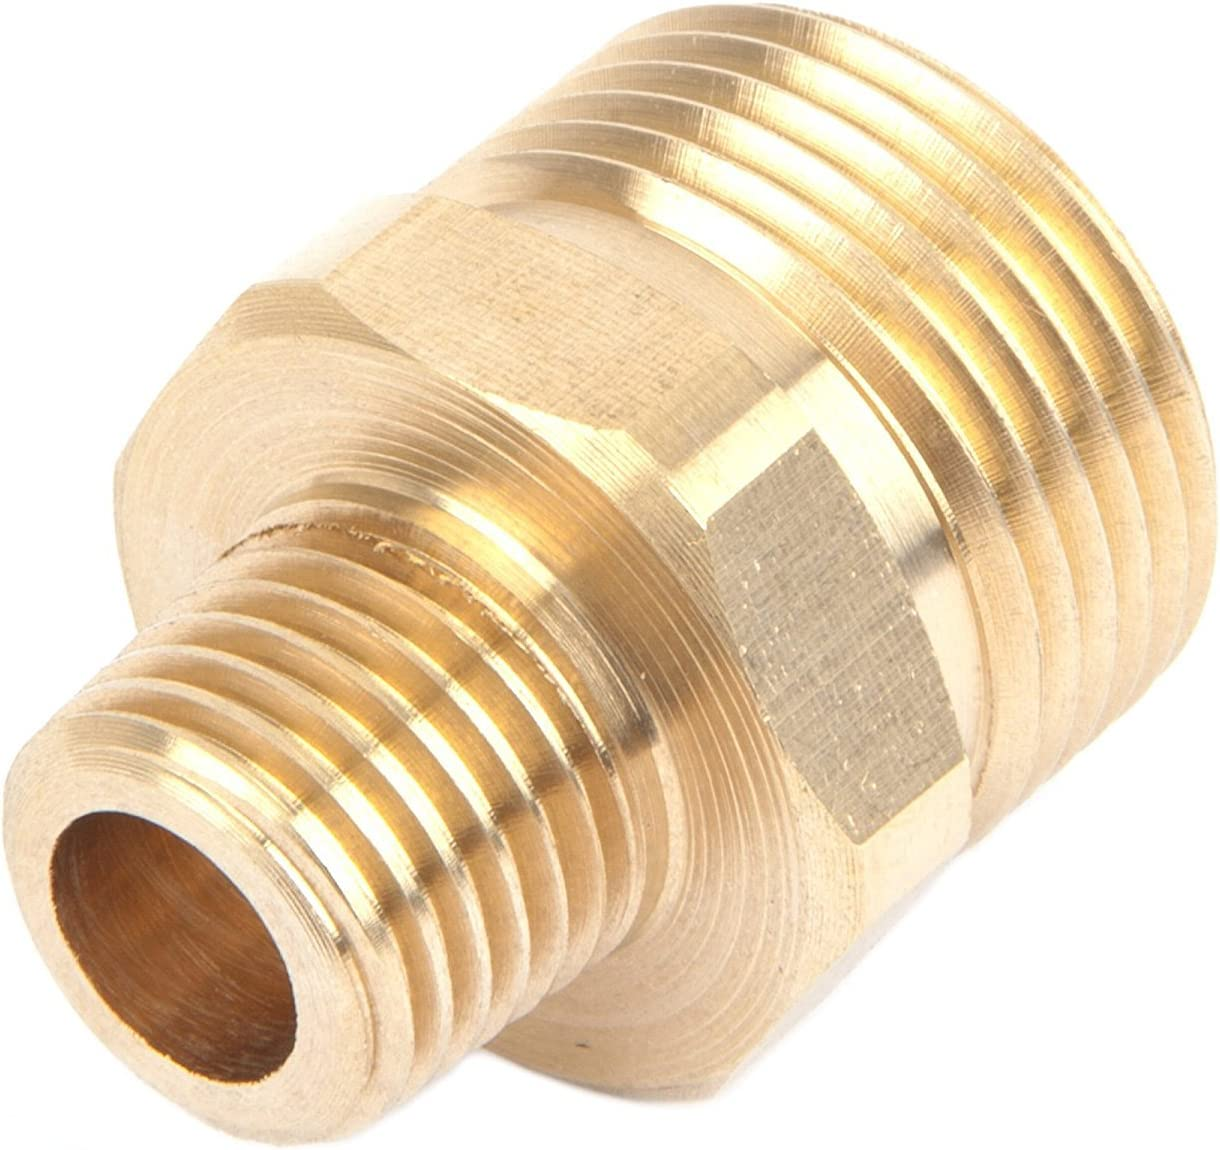 "Pressure Washer Fitting Adapter Connector Plug 22mm Male X 1//4/"" Male NPT"